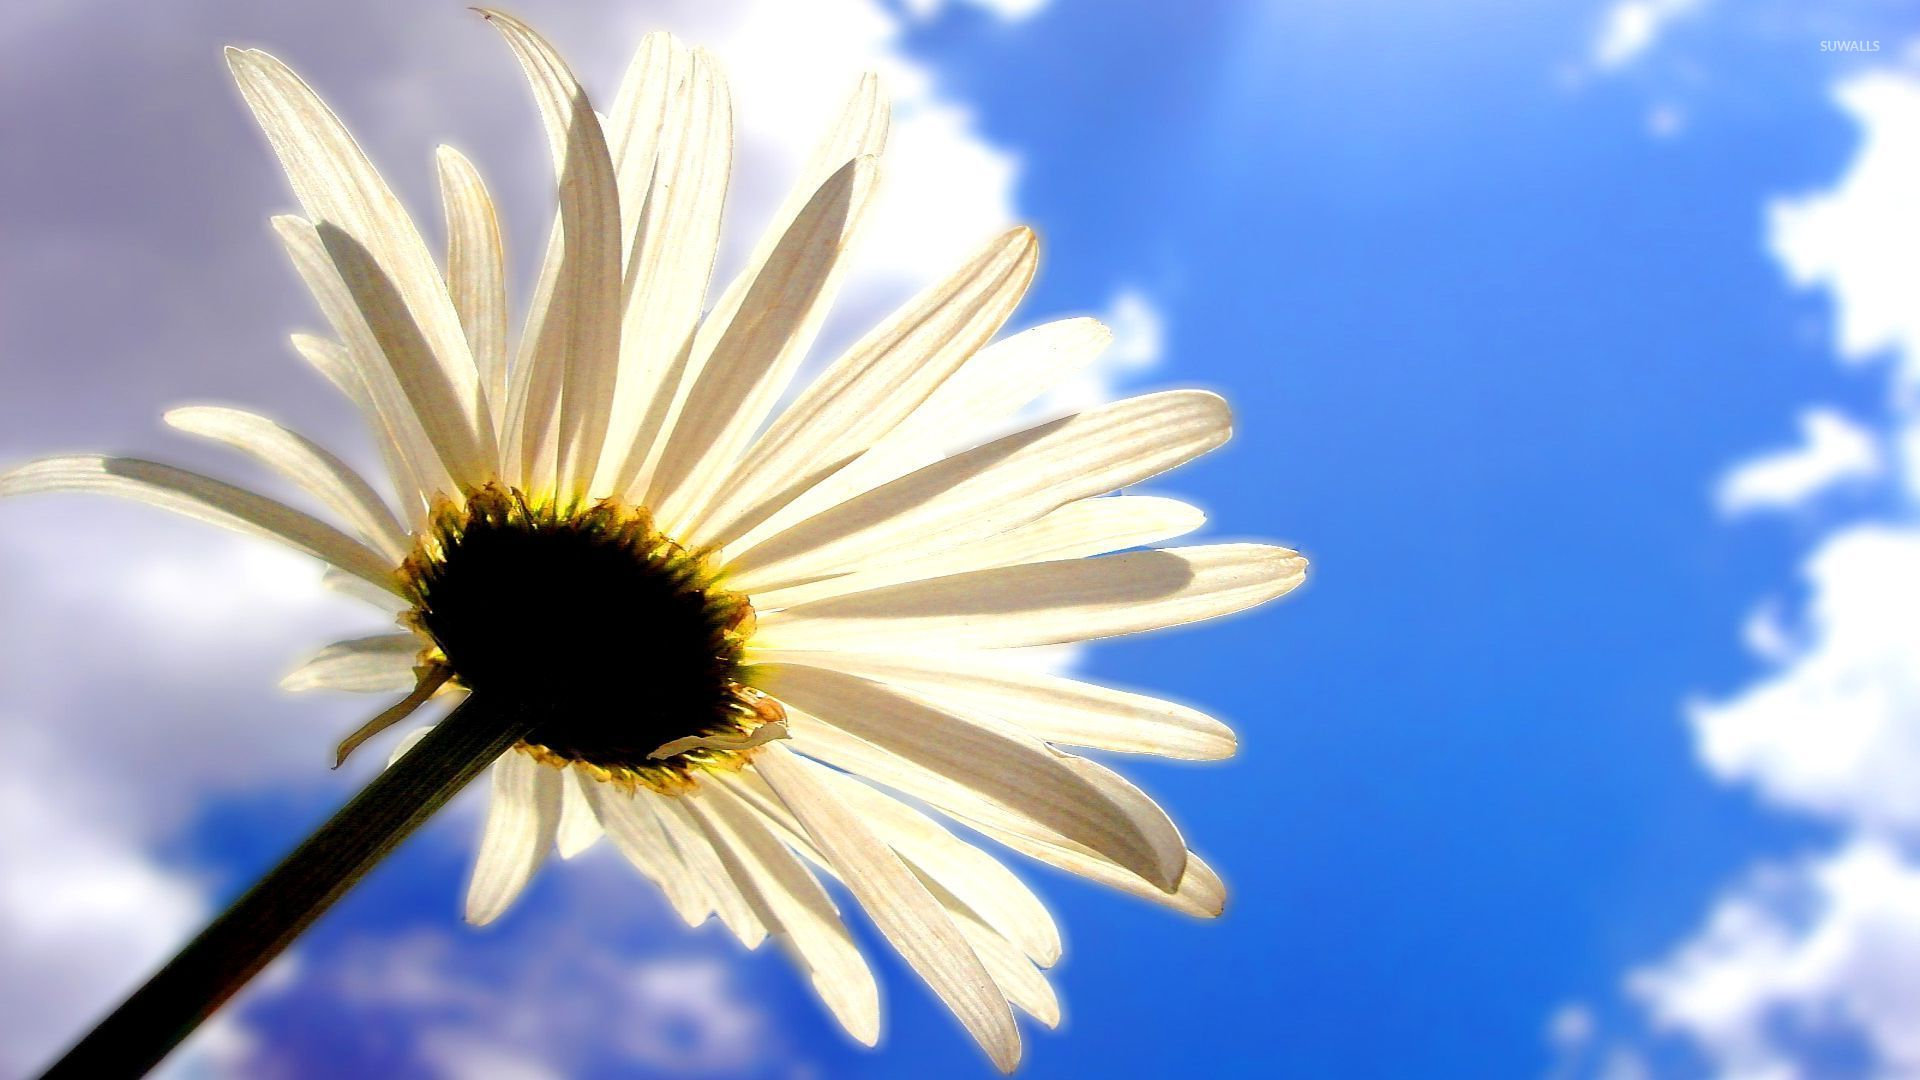 Christian Wallpapers For Girls Daisy In The Clouds Wallpaper Flower Wallpapers 52887